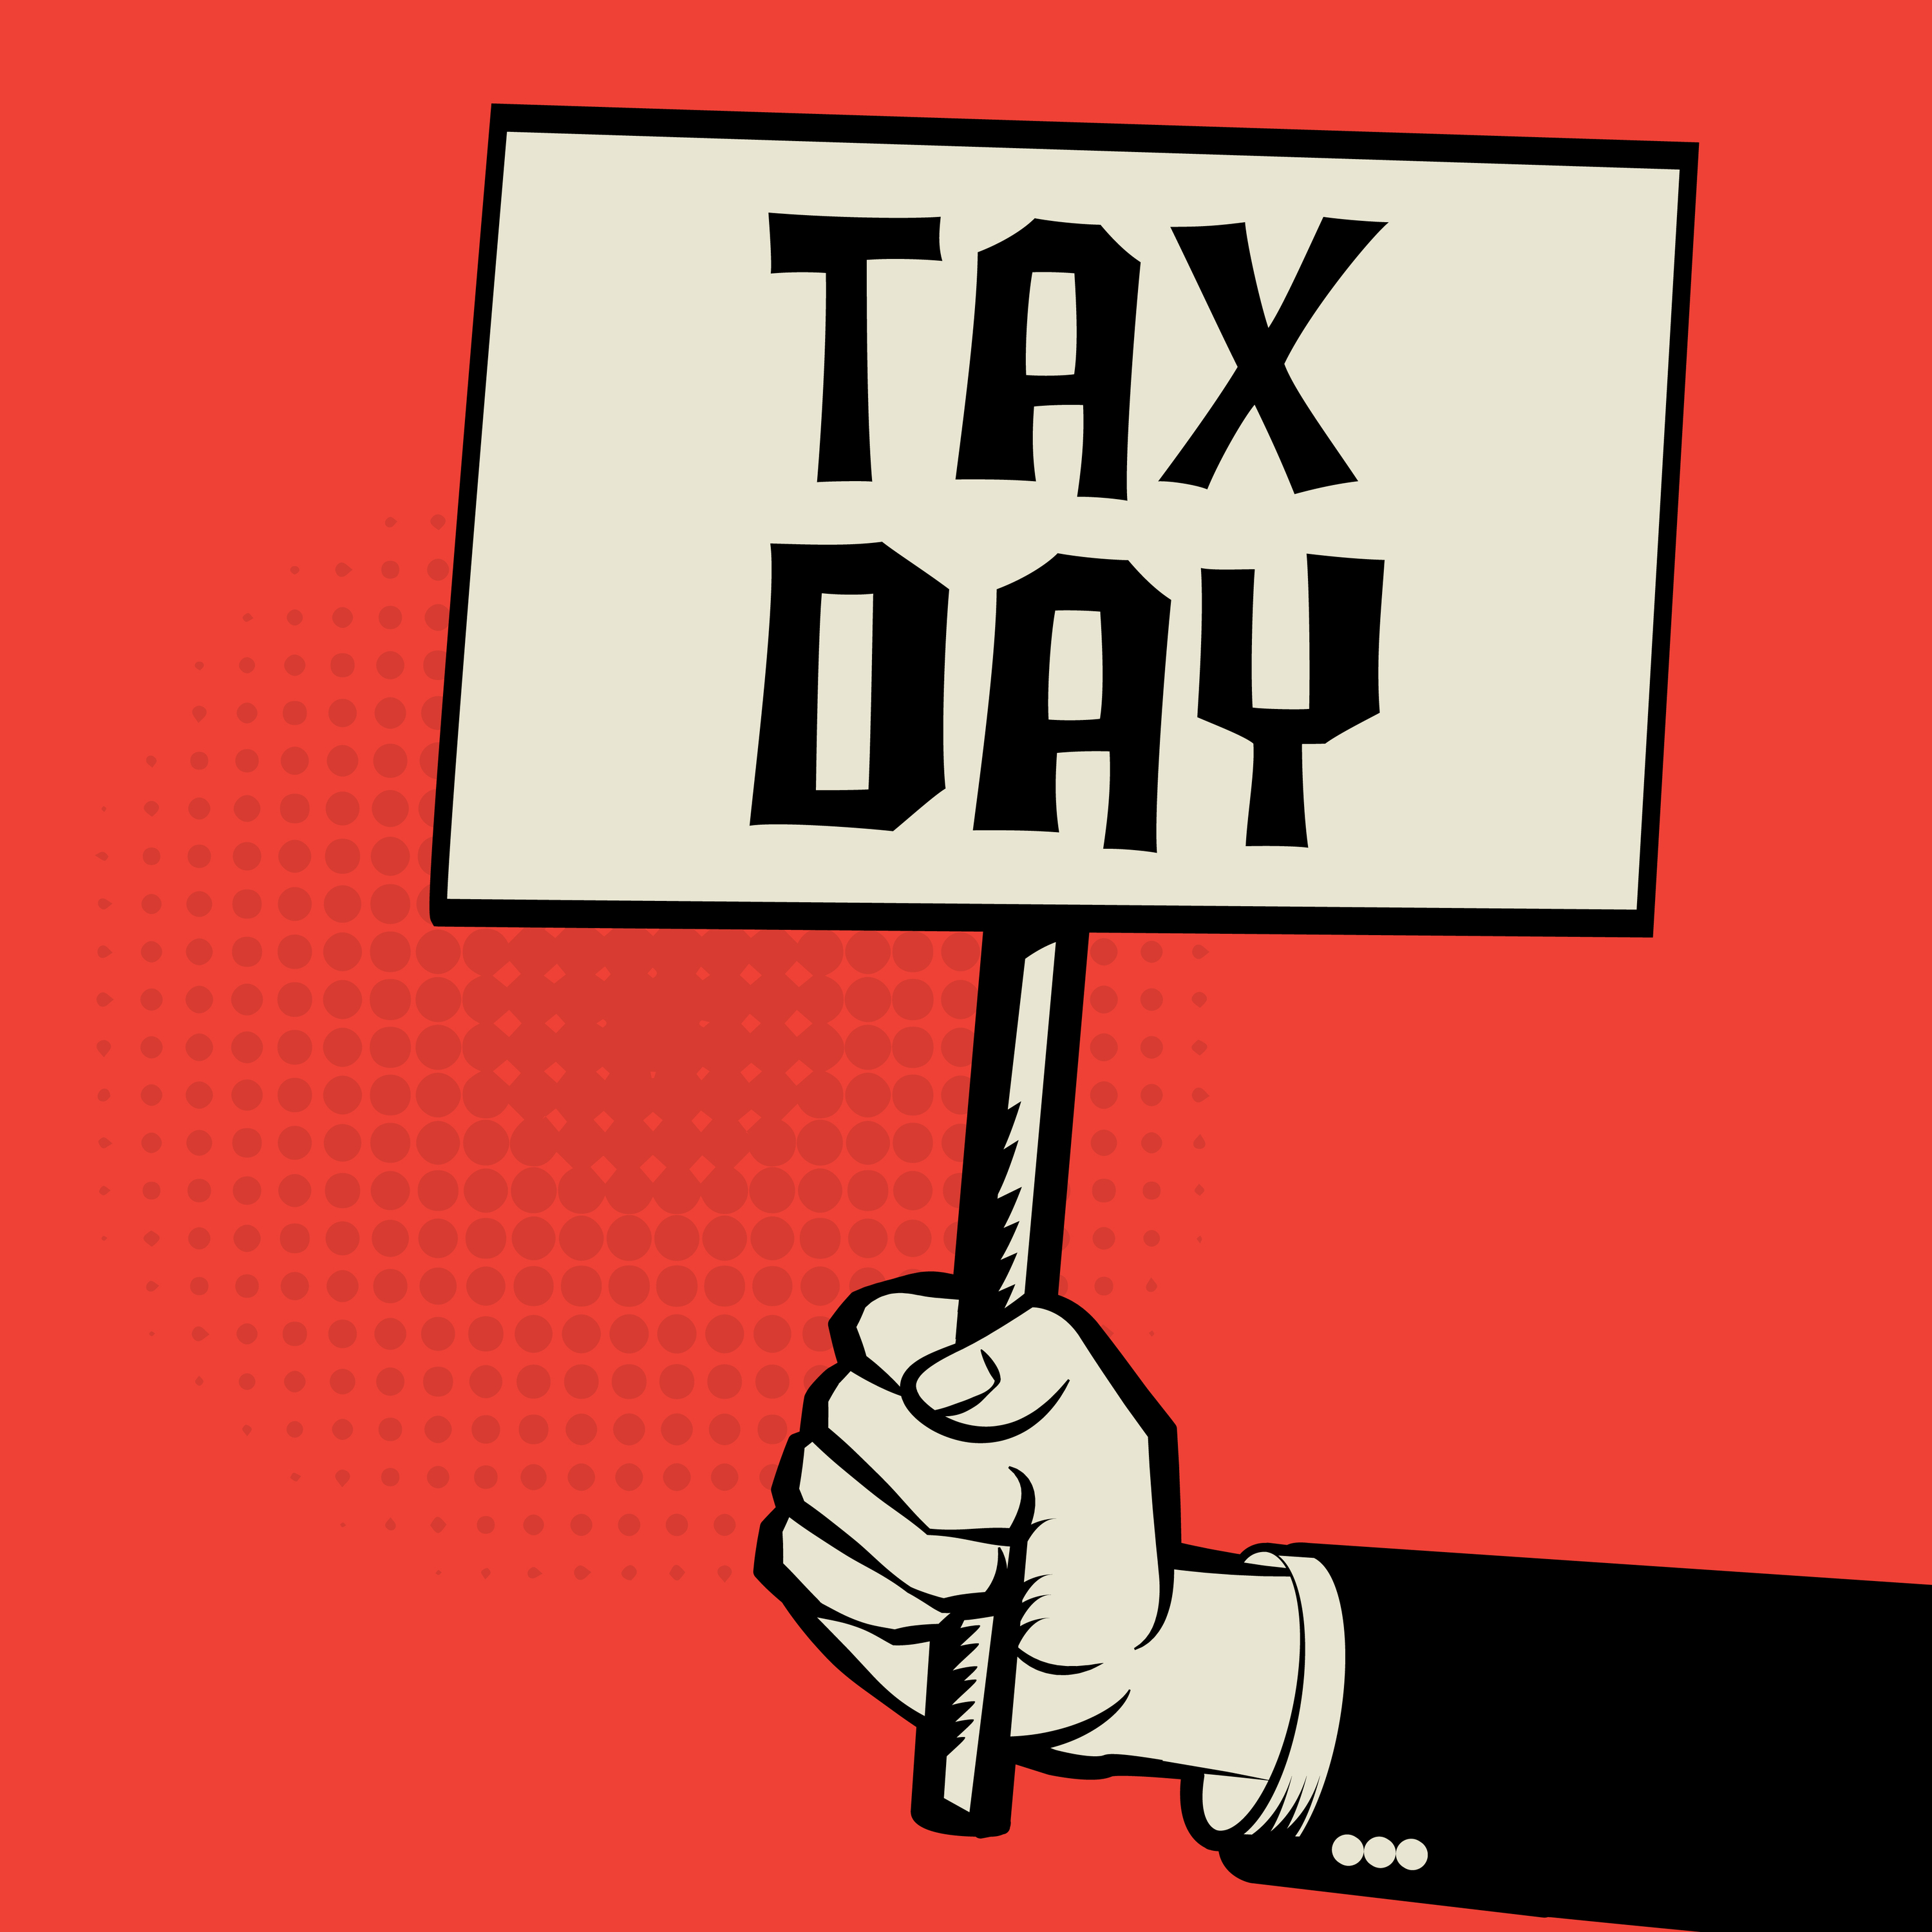 Tax day 2017 clipart jpg download Tax Day and Patents | Suiter Swantz IP jpg download